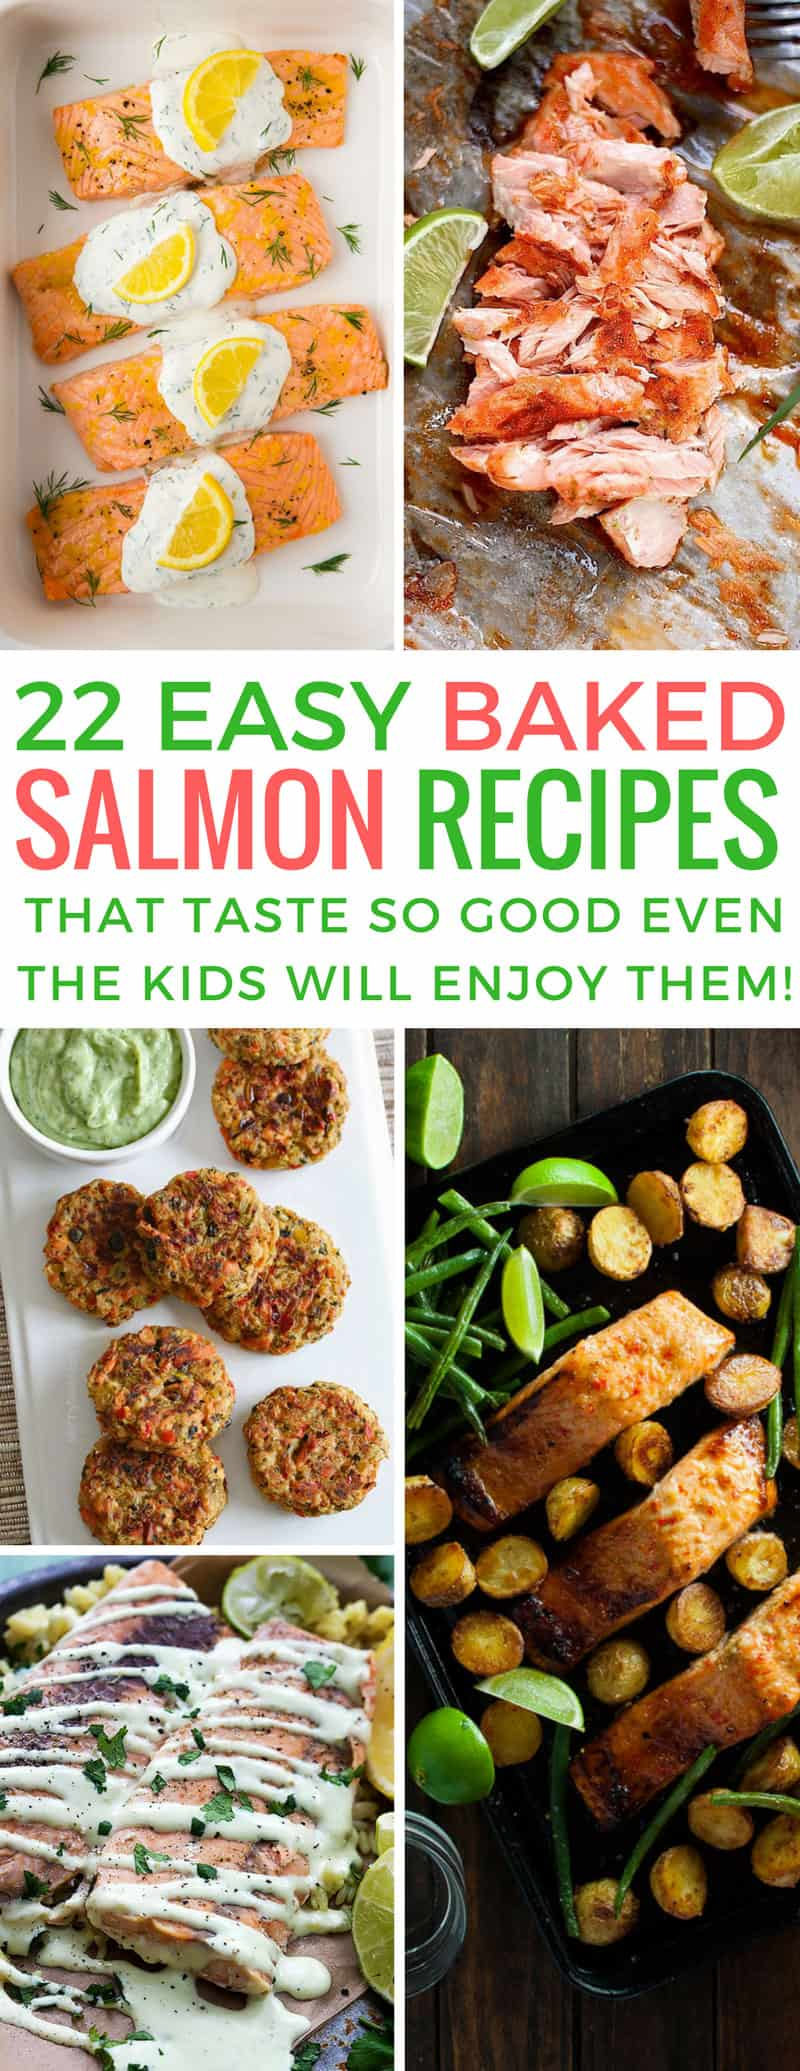 Oh my - who knew baked salmon recipes could be so easy and kid friendly! Thanks for sharing!